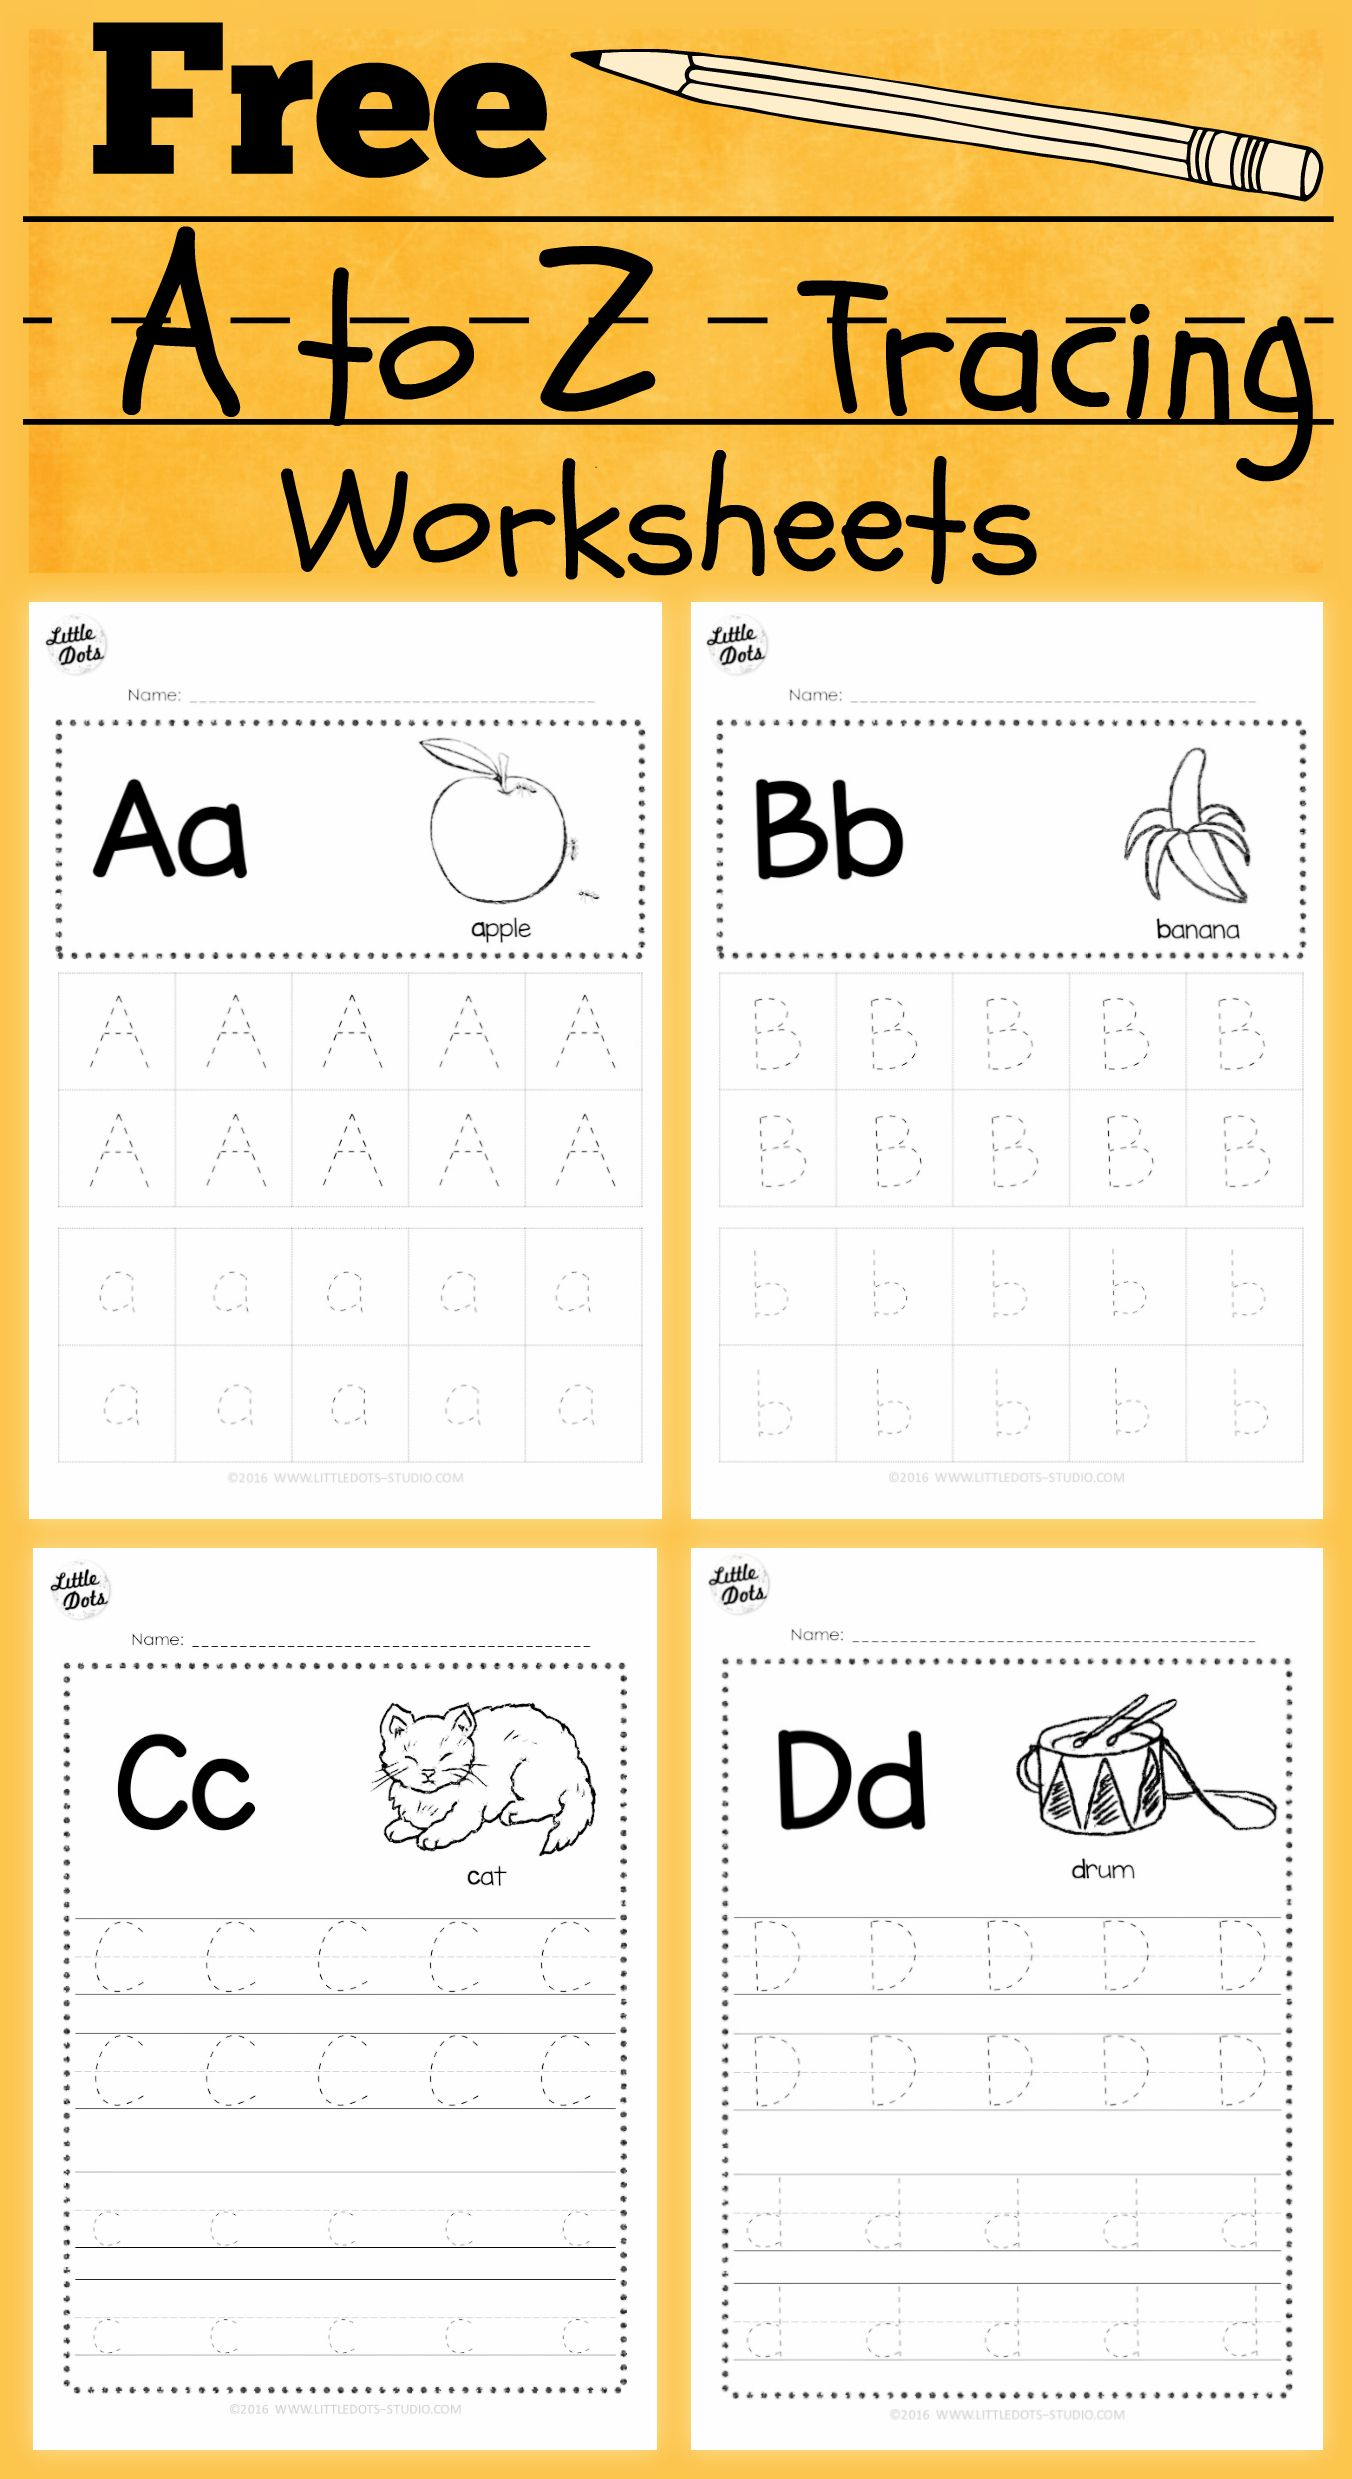 Download Free Alphabet Tracing Worksheets For Letter A To Z with regard to A-Z Name Tracing